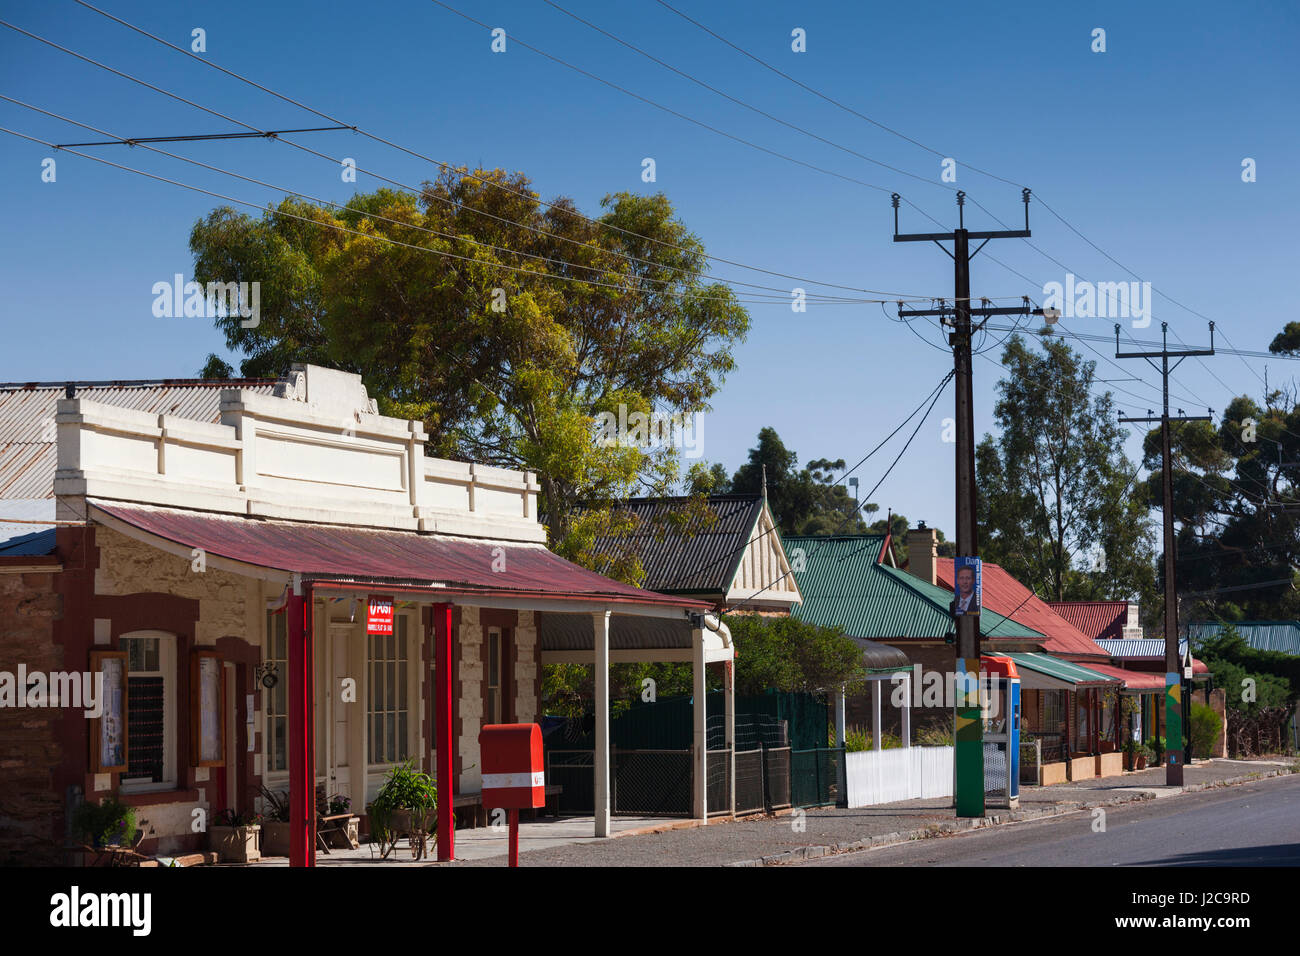 Australia, Clare Valley, Farrell Flat, town view - Stock Image